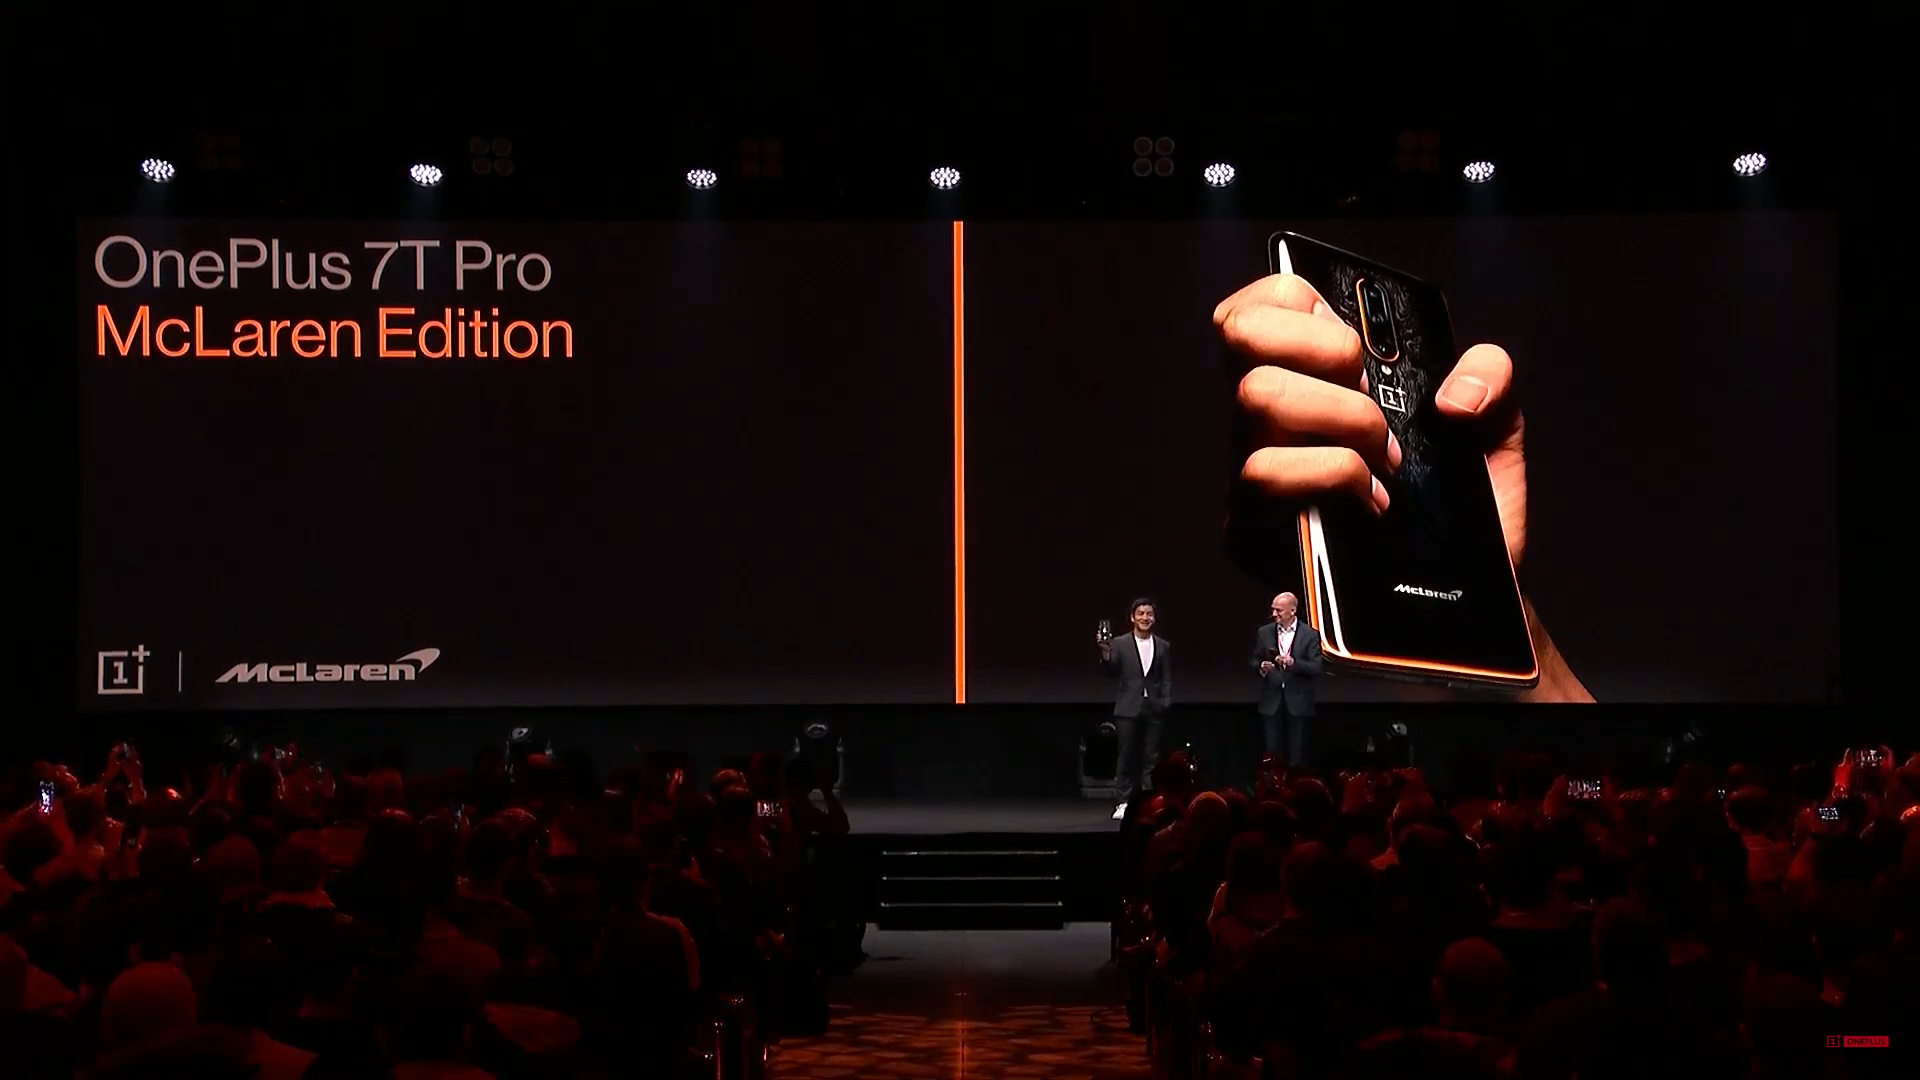 OnePlus unveils OnePlus 7T Pro and 7T Pro McLaren Edition at their event in London 3